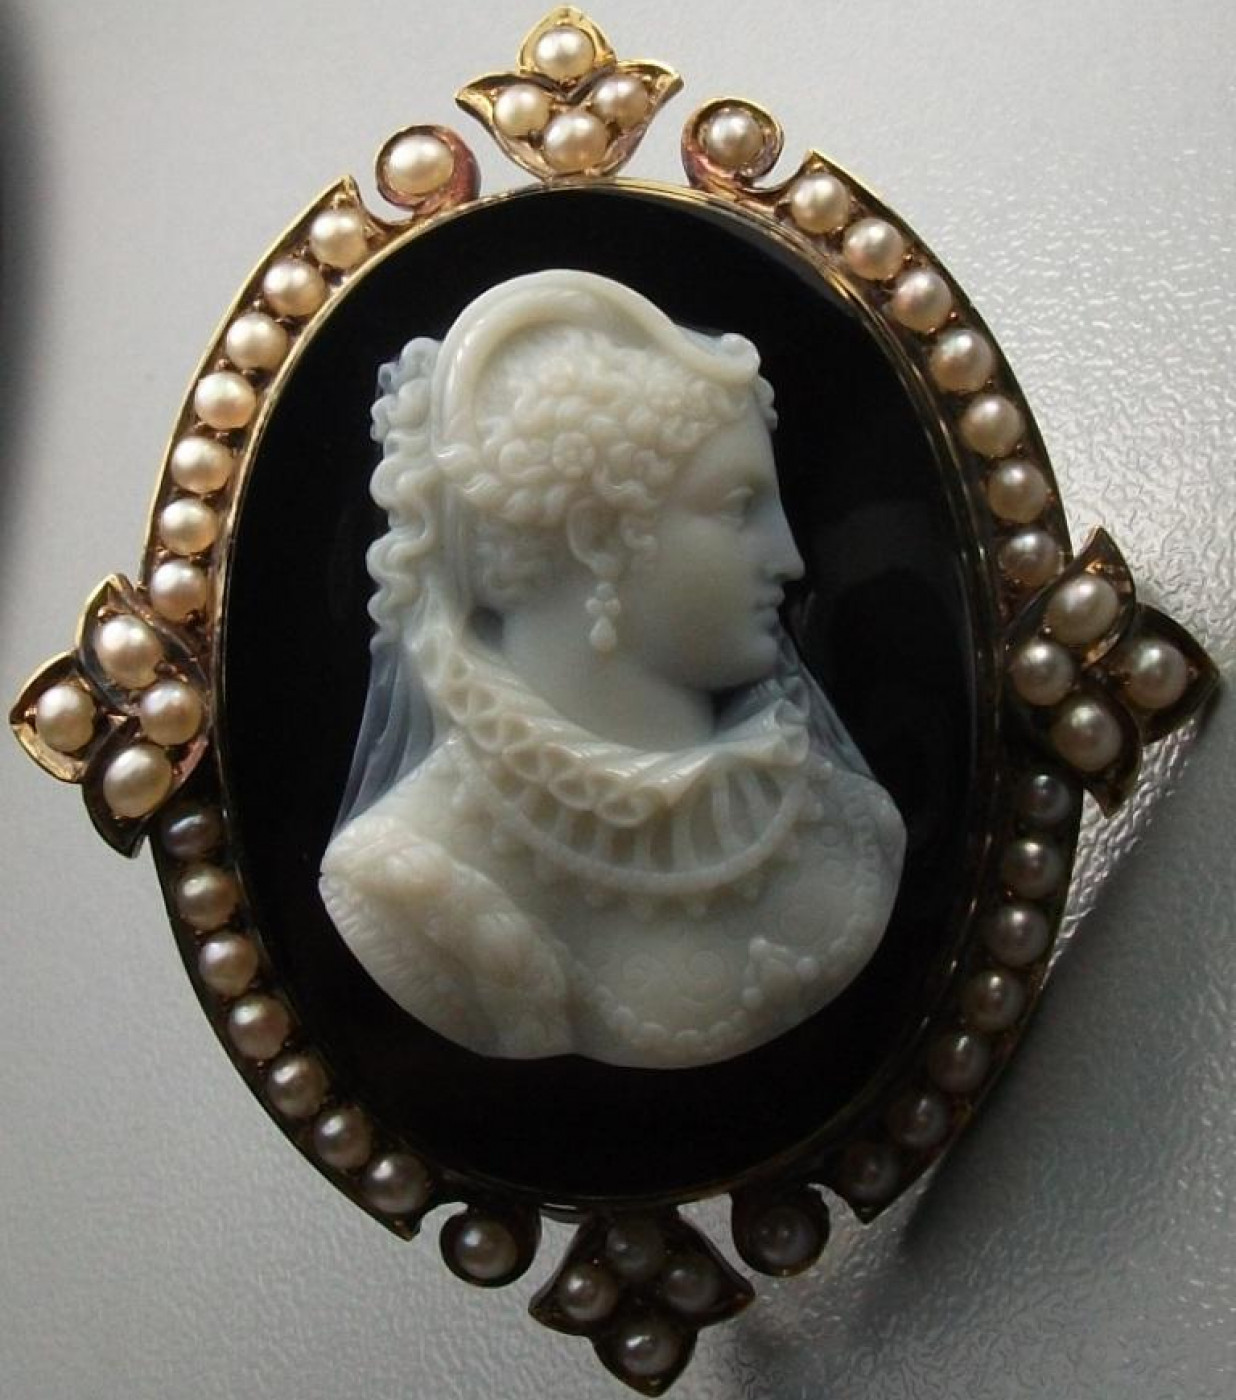 Rarest Hard Stone Cameo of Mary the Queen of Scots